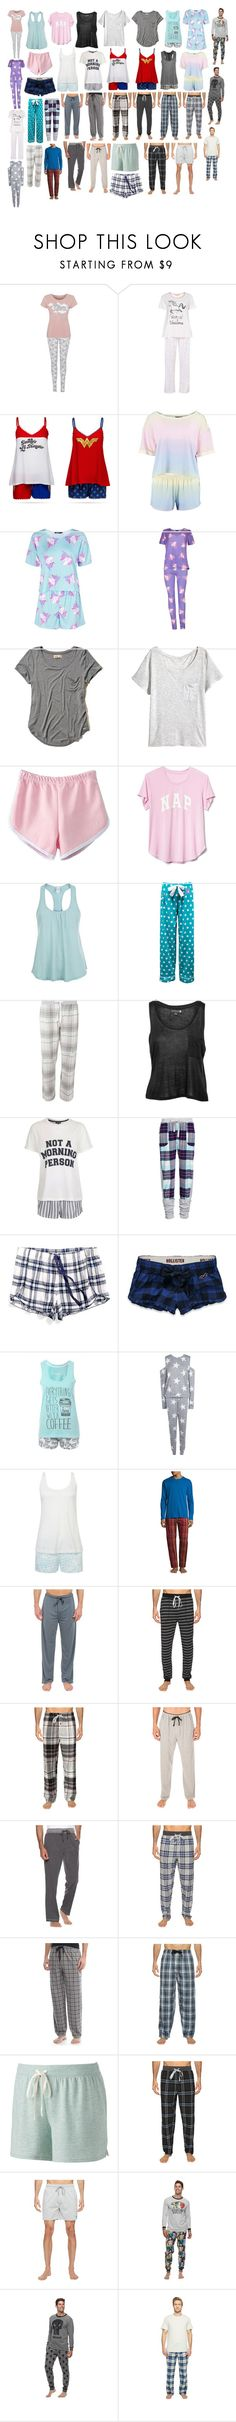 """Pajamas 6"" by spellcasters ❤ liked on Polyvore featuring George, Dorothy Perkins, Boohoo, Hollister Co., Gap, Eberjey, Topshop, Tommy Hilfiger, Été Swim and Original Penguin"